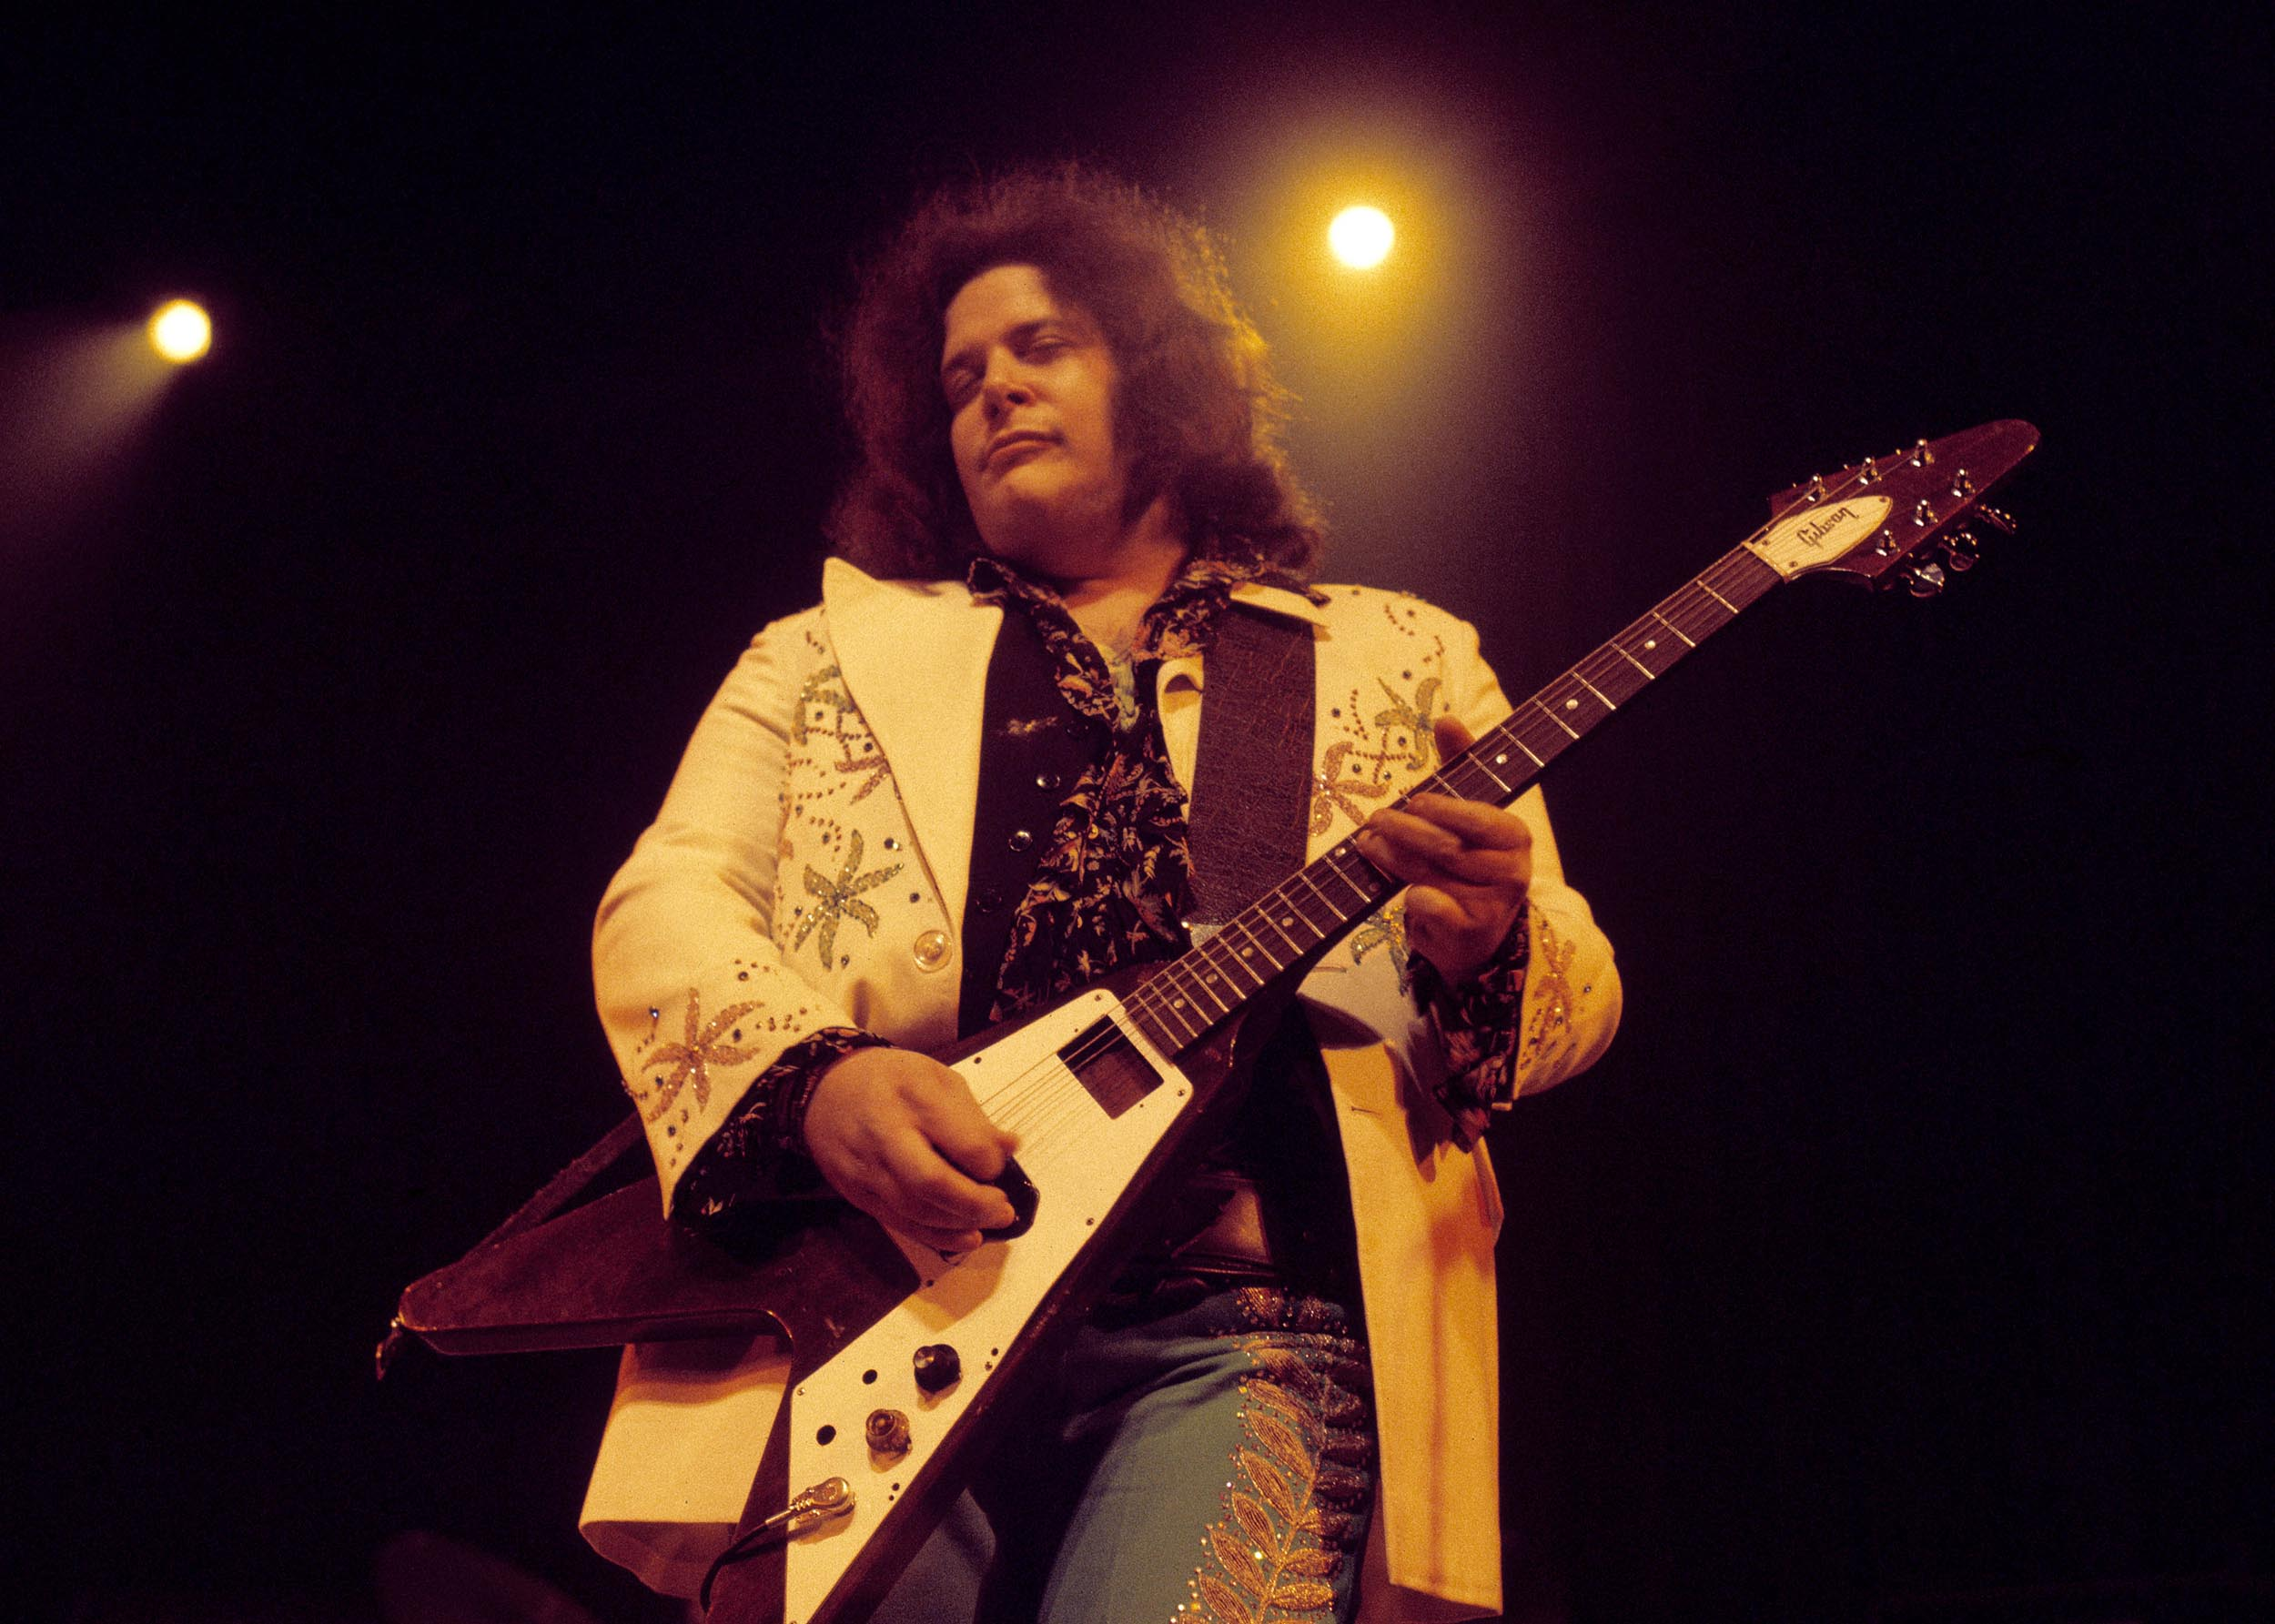 Leslie West, Mountain Guitarist Who Belted Out 'Mississippi Queen,' Dead at 75